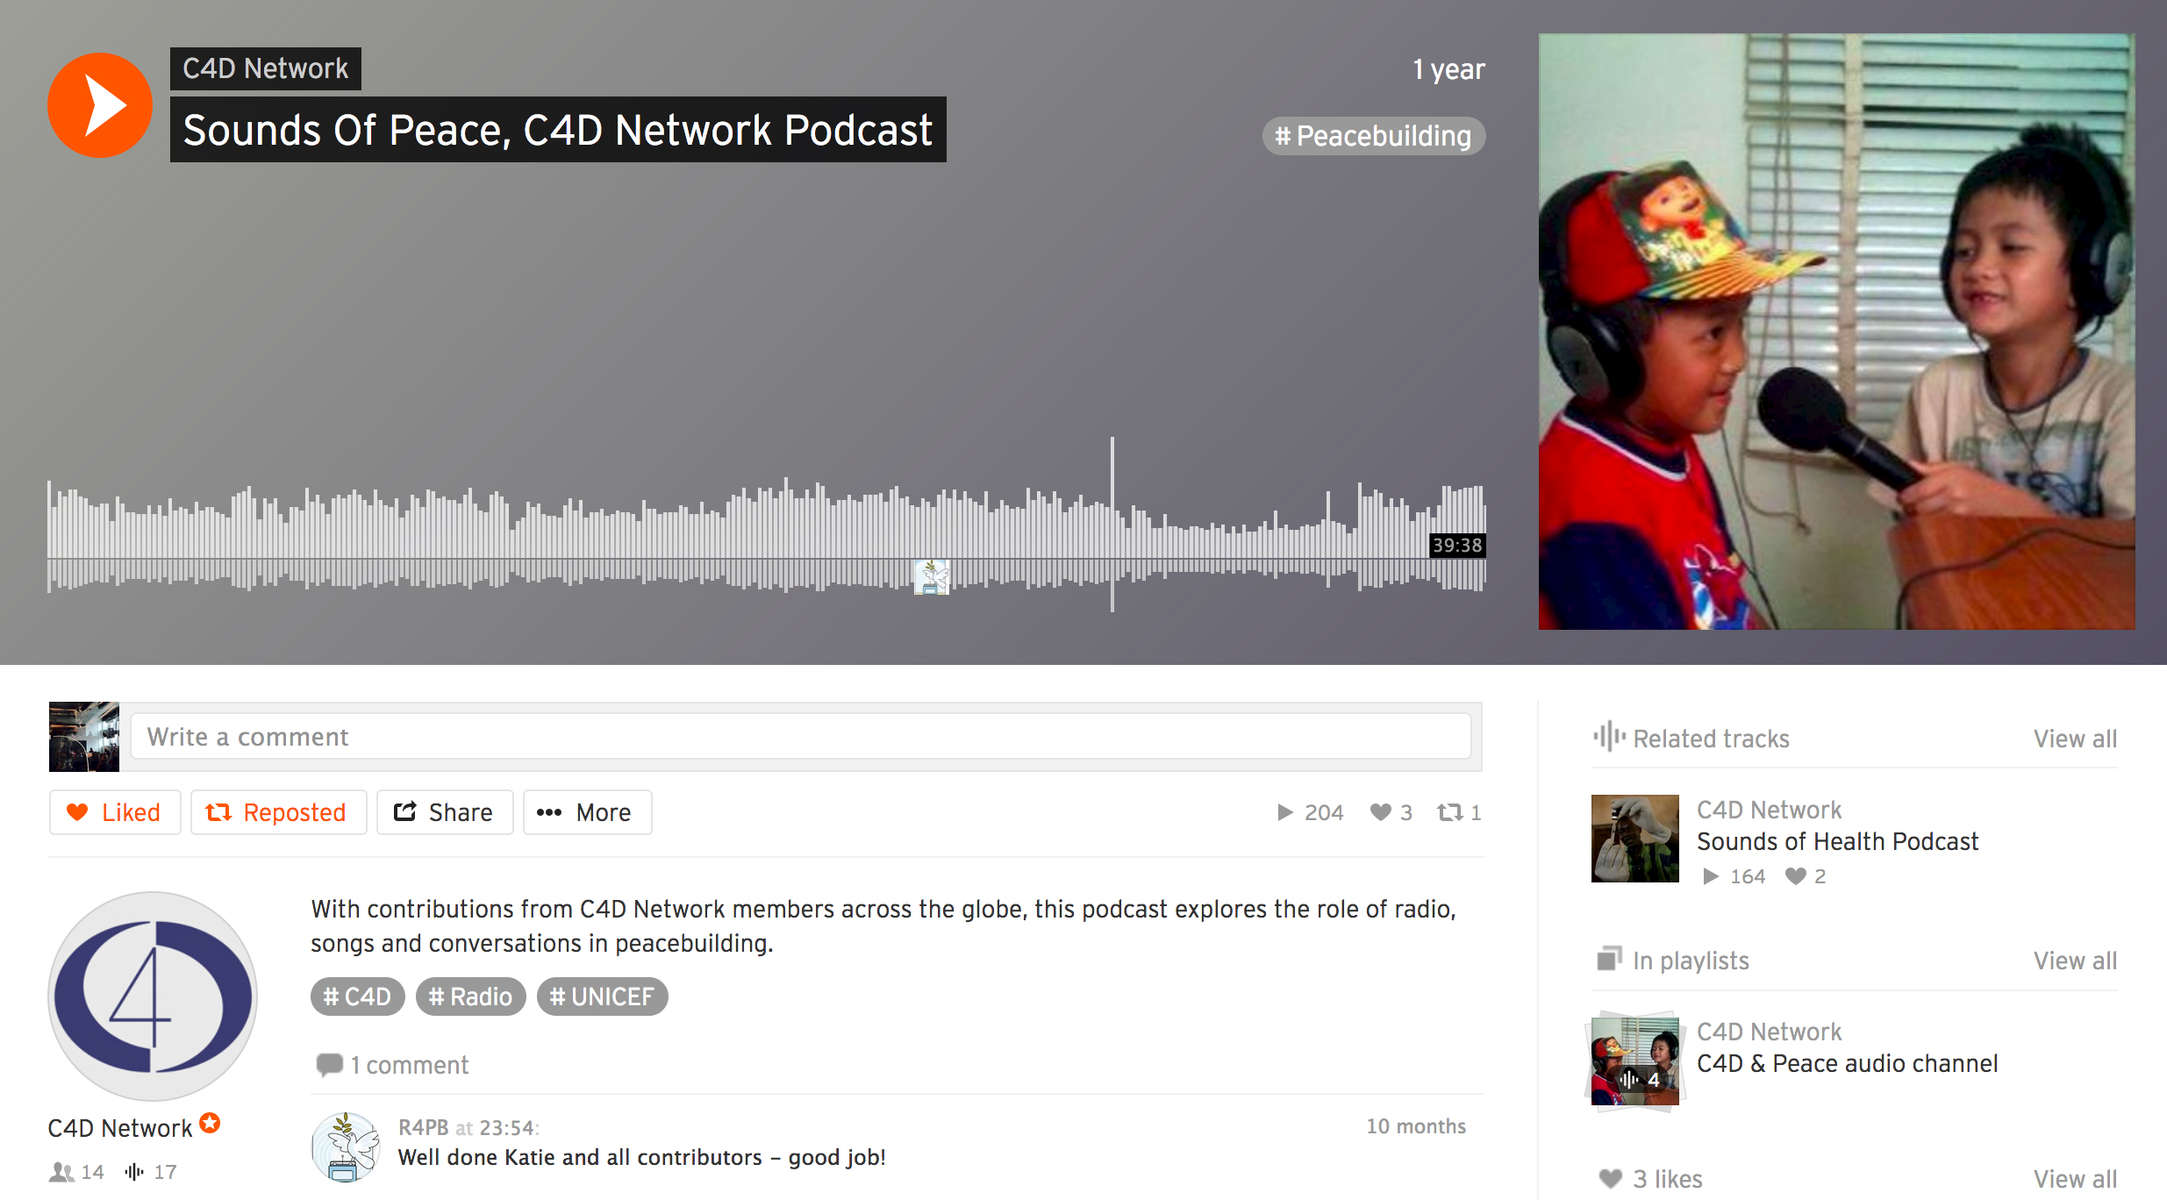 With contributions from C4D Network members across the globe, this podcast explores the role of radio, songs and conversations in peacebuilding. Produced by the C4D Network.